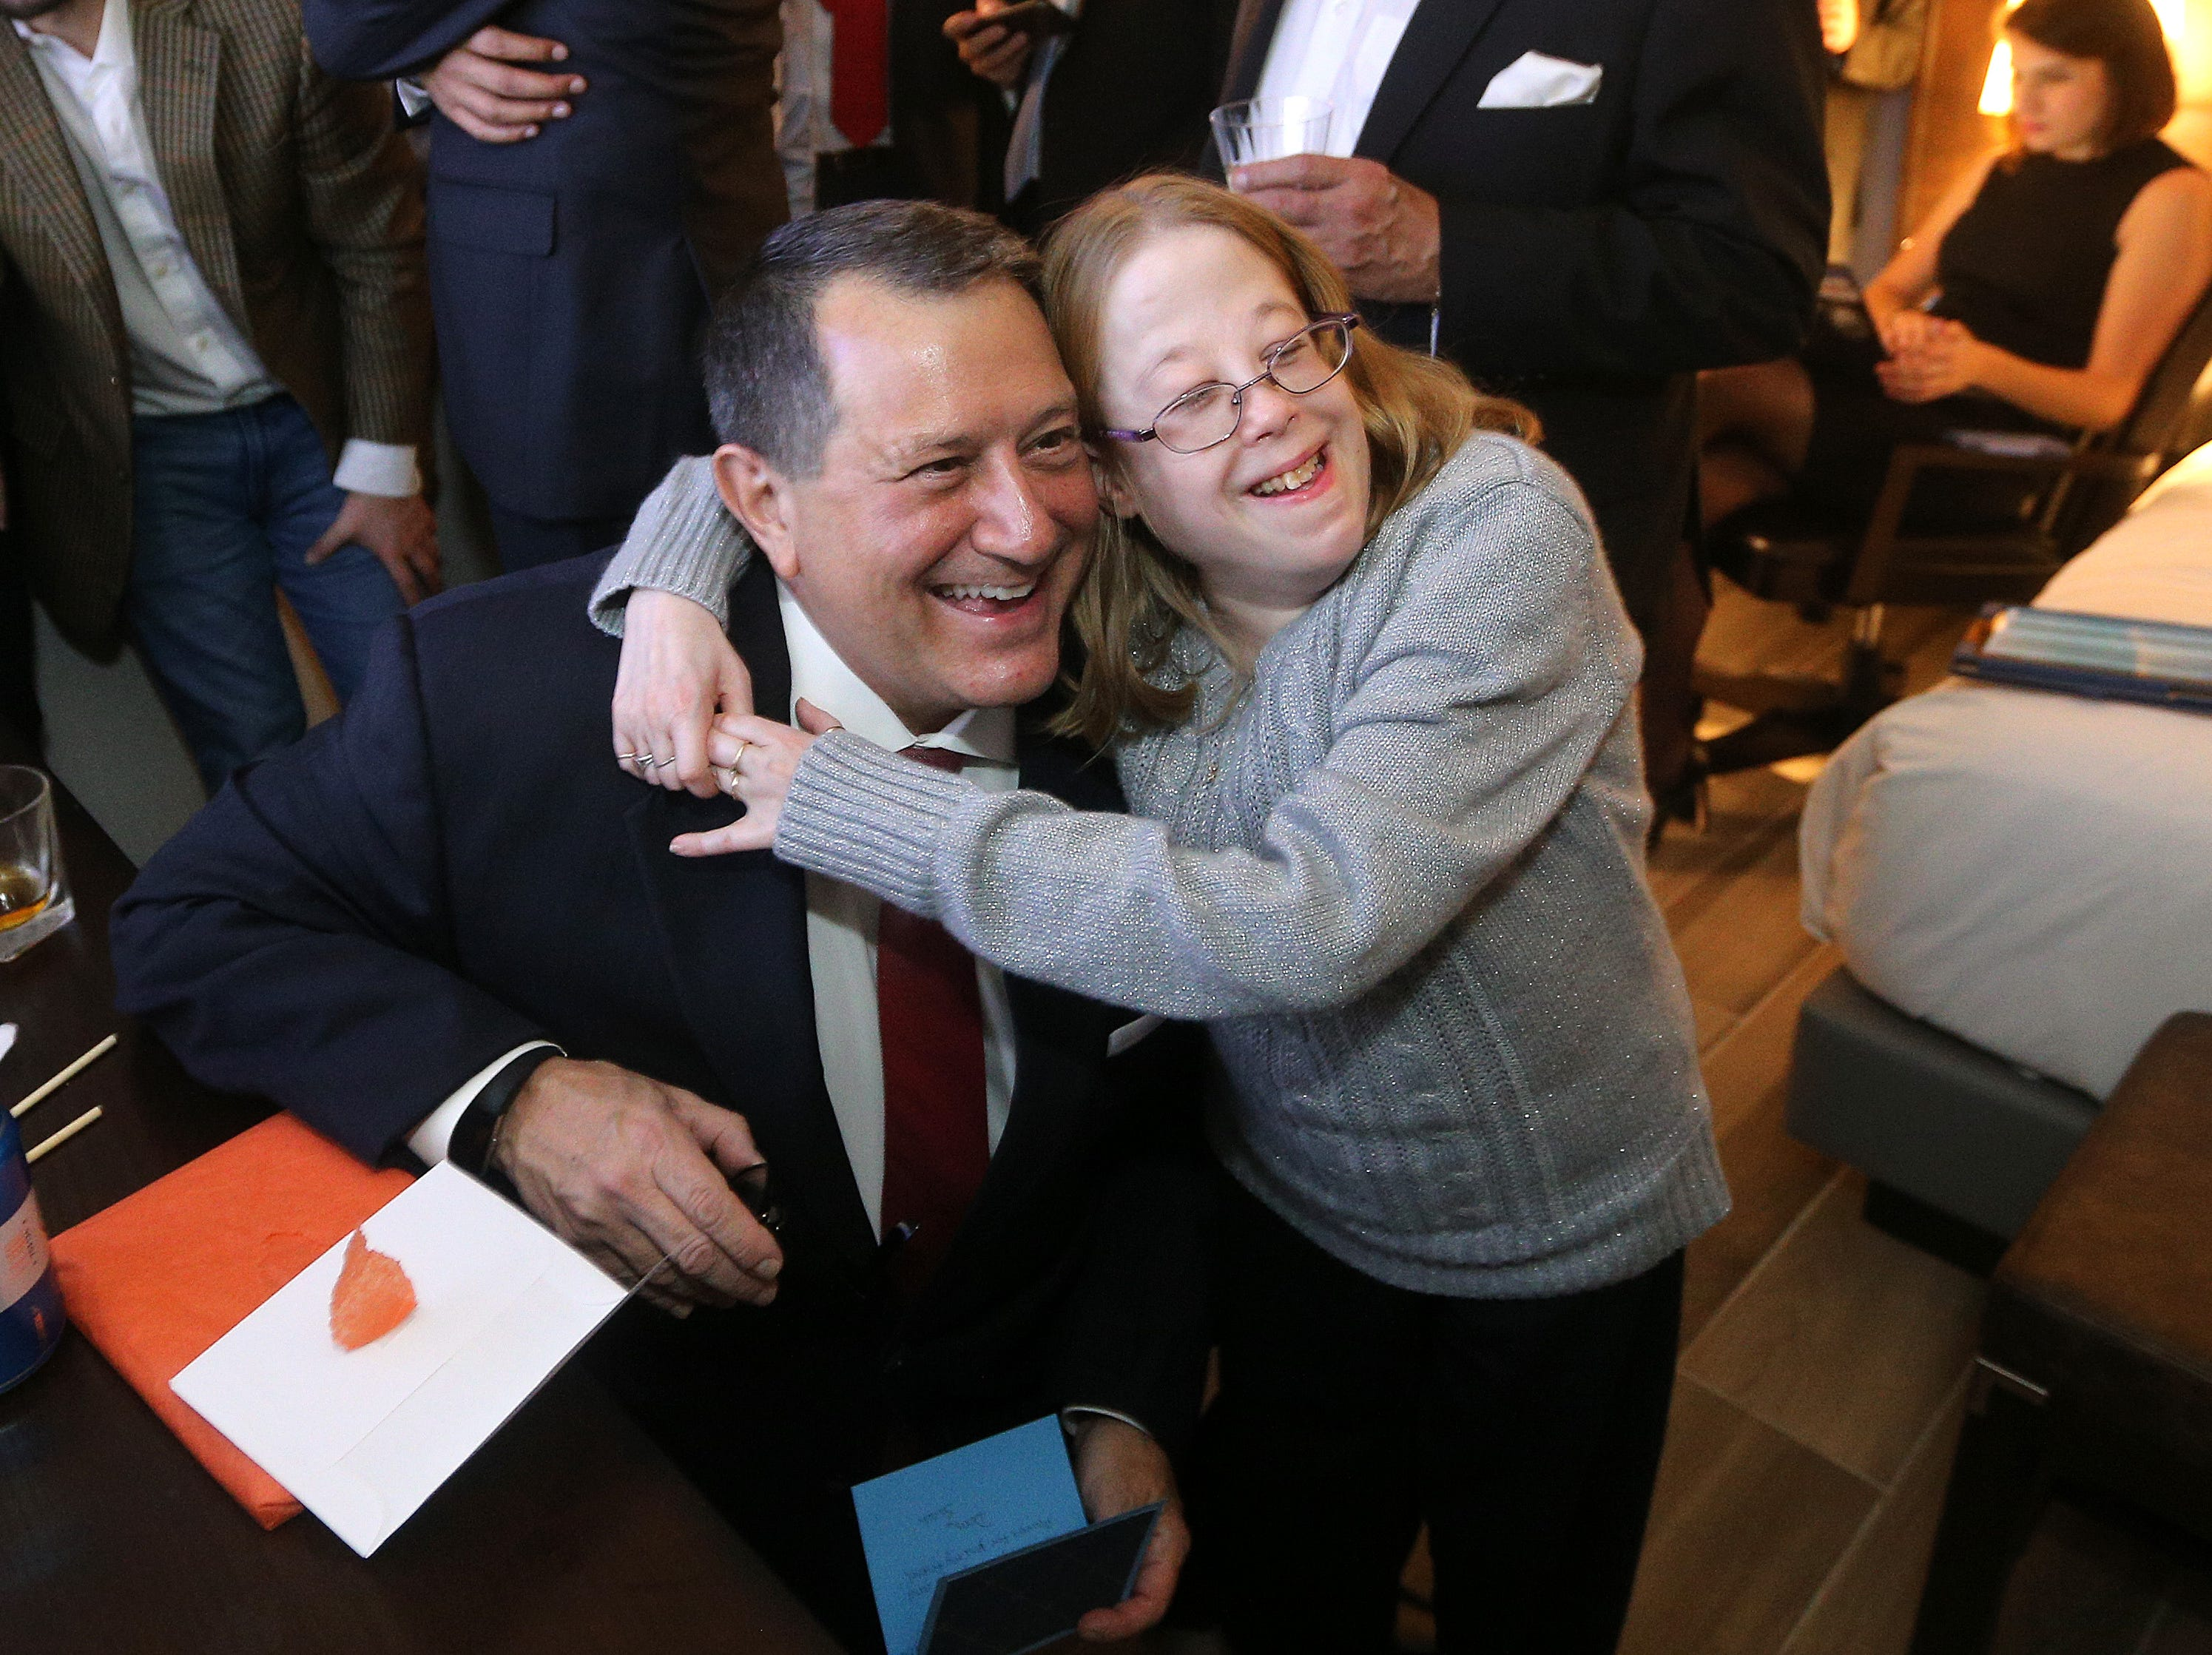 Joe Morelle poses with his friend Sarah Behan as he waits for poll results.  Morelle went on to win the congressional seat in the 25 district  of New York.